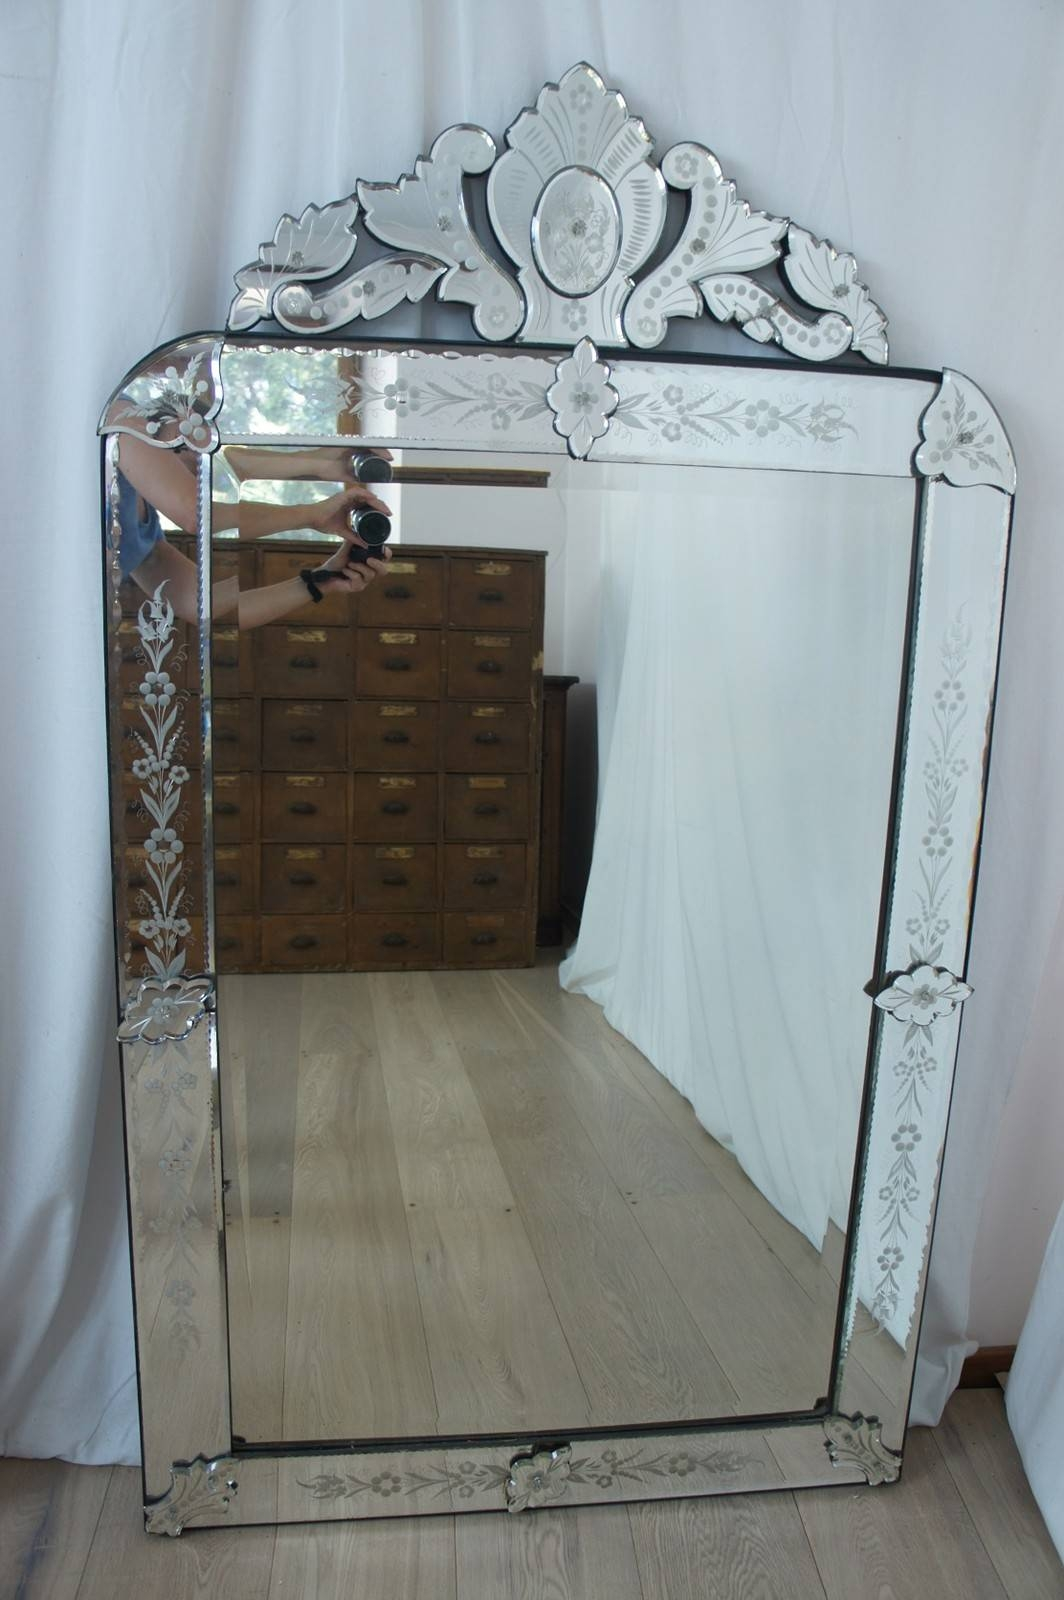 Large Venetian Mirror - The Hoarde throughout Large Venetian Mirrors (Image 12 of 25)